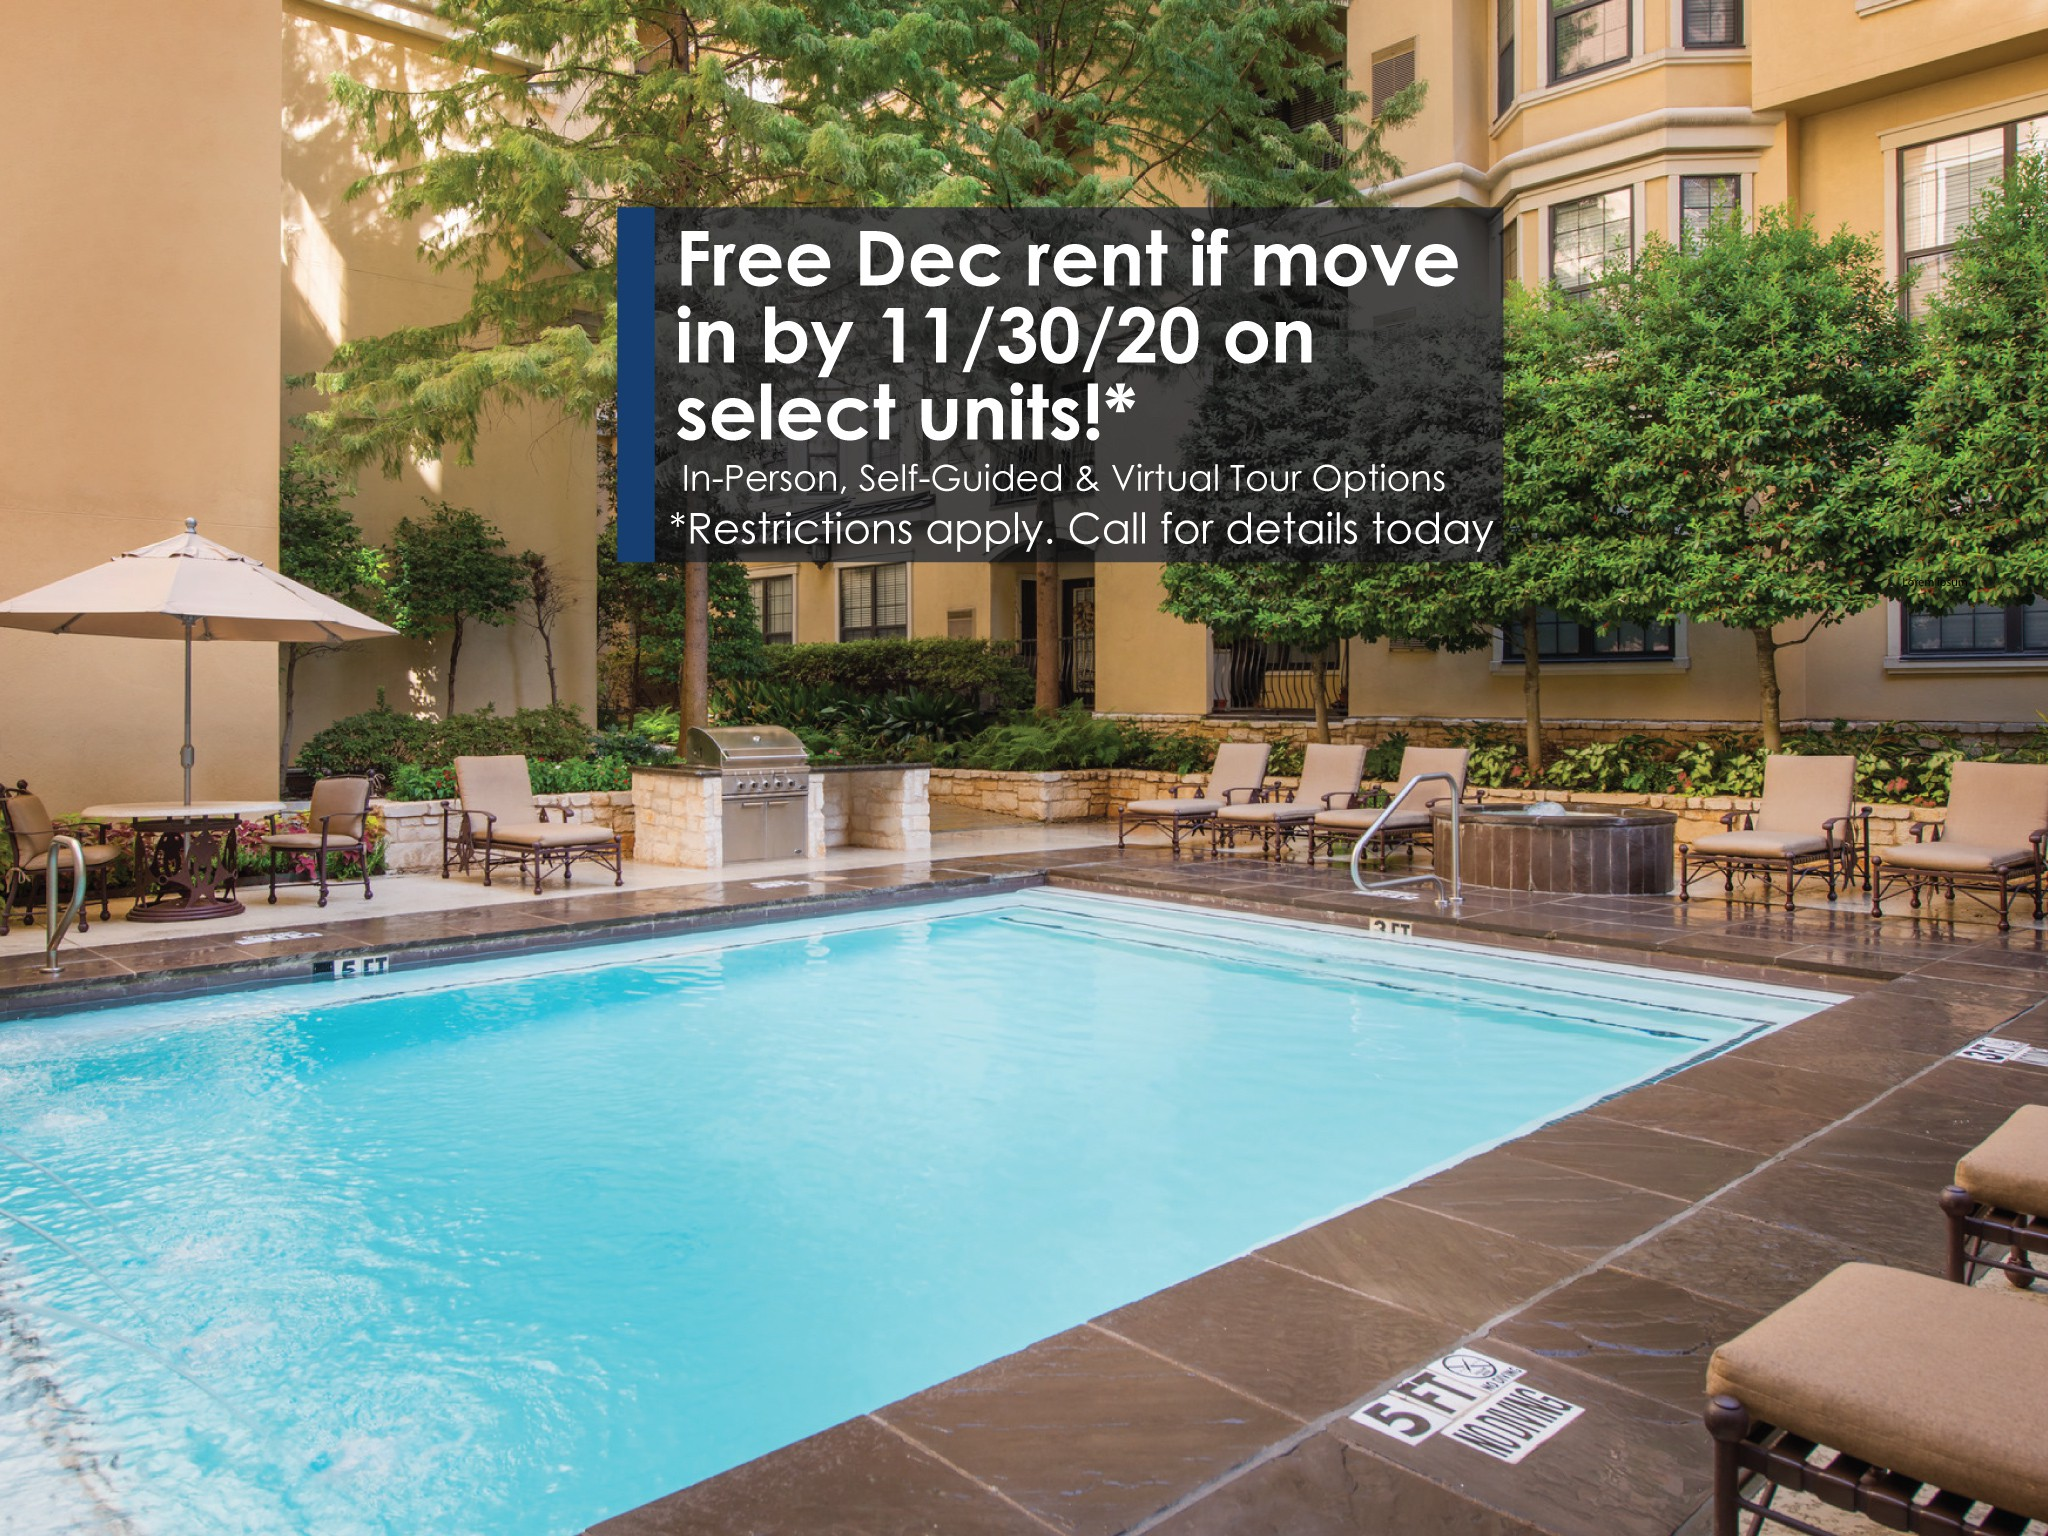 Apartments Near DTS State Thomas Ravello for Dallas Theological Seminary Students in Dallas, TX